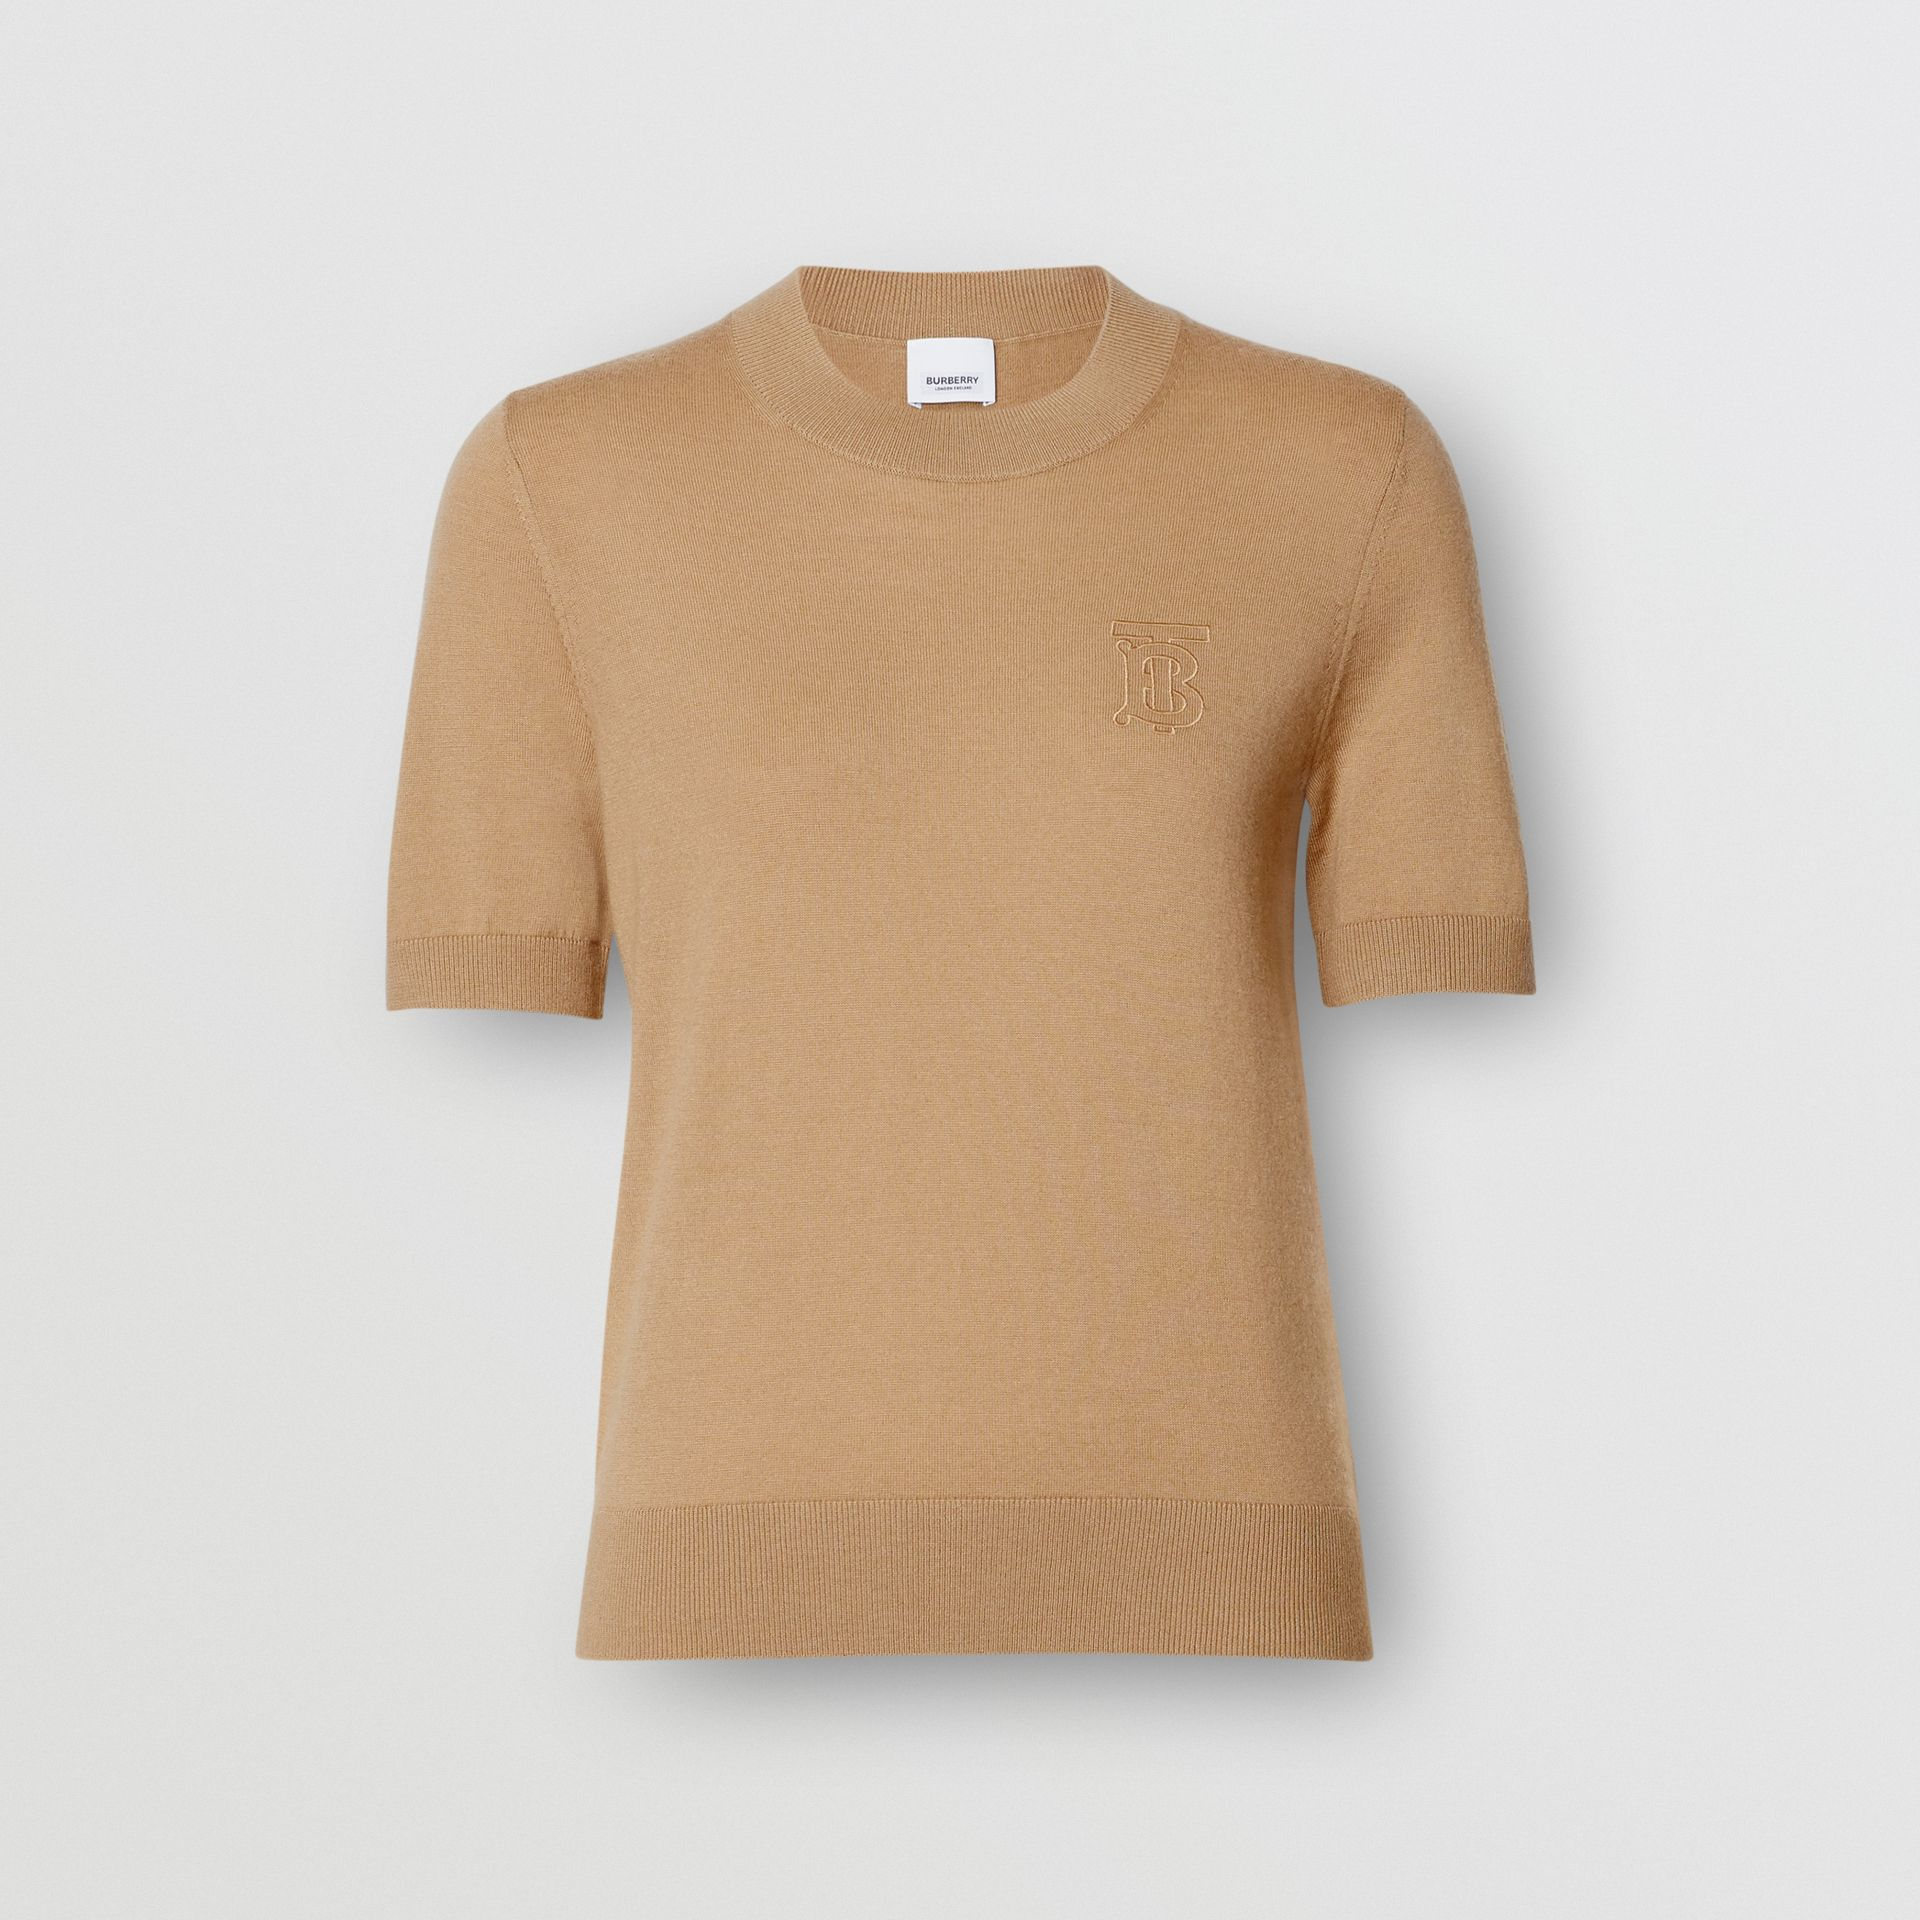 Monogram Motif Cashmere Top in Archive Beige - Women | Burberry - gallery image 3